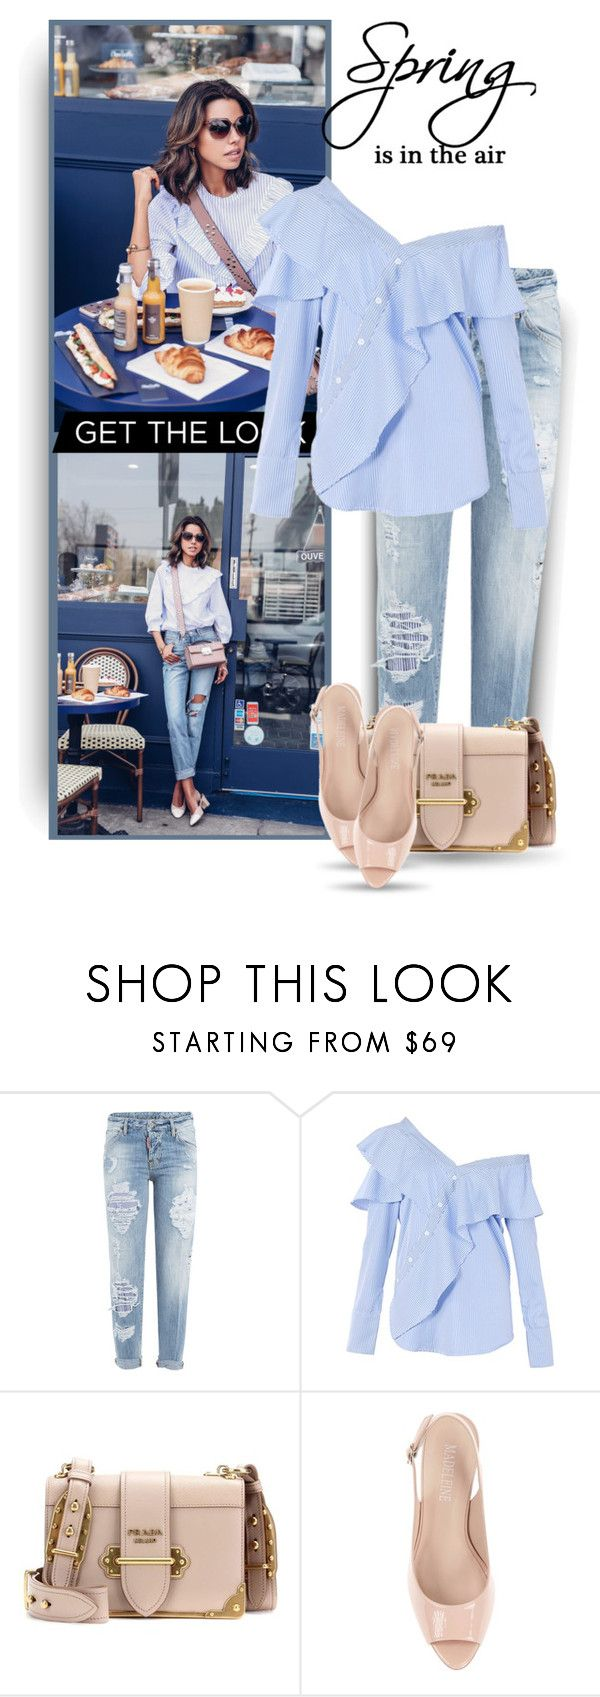 """""""Spring Staples"""" by bliznec ❤ liked on Polyvore featuring Dsquared2, FAIR+true, Prada and Spring"""